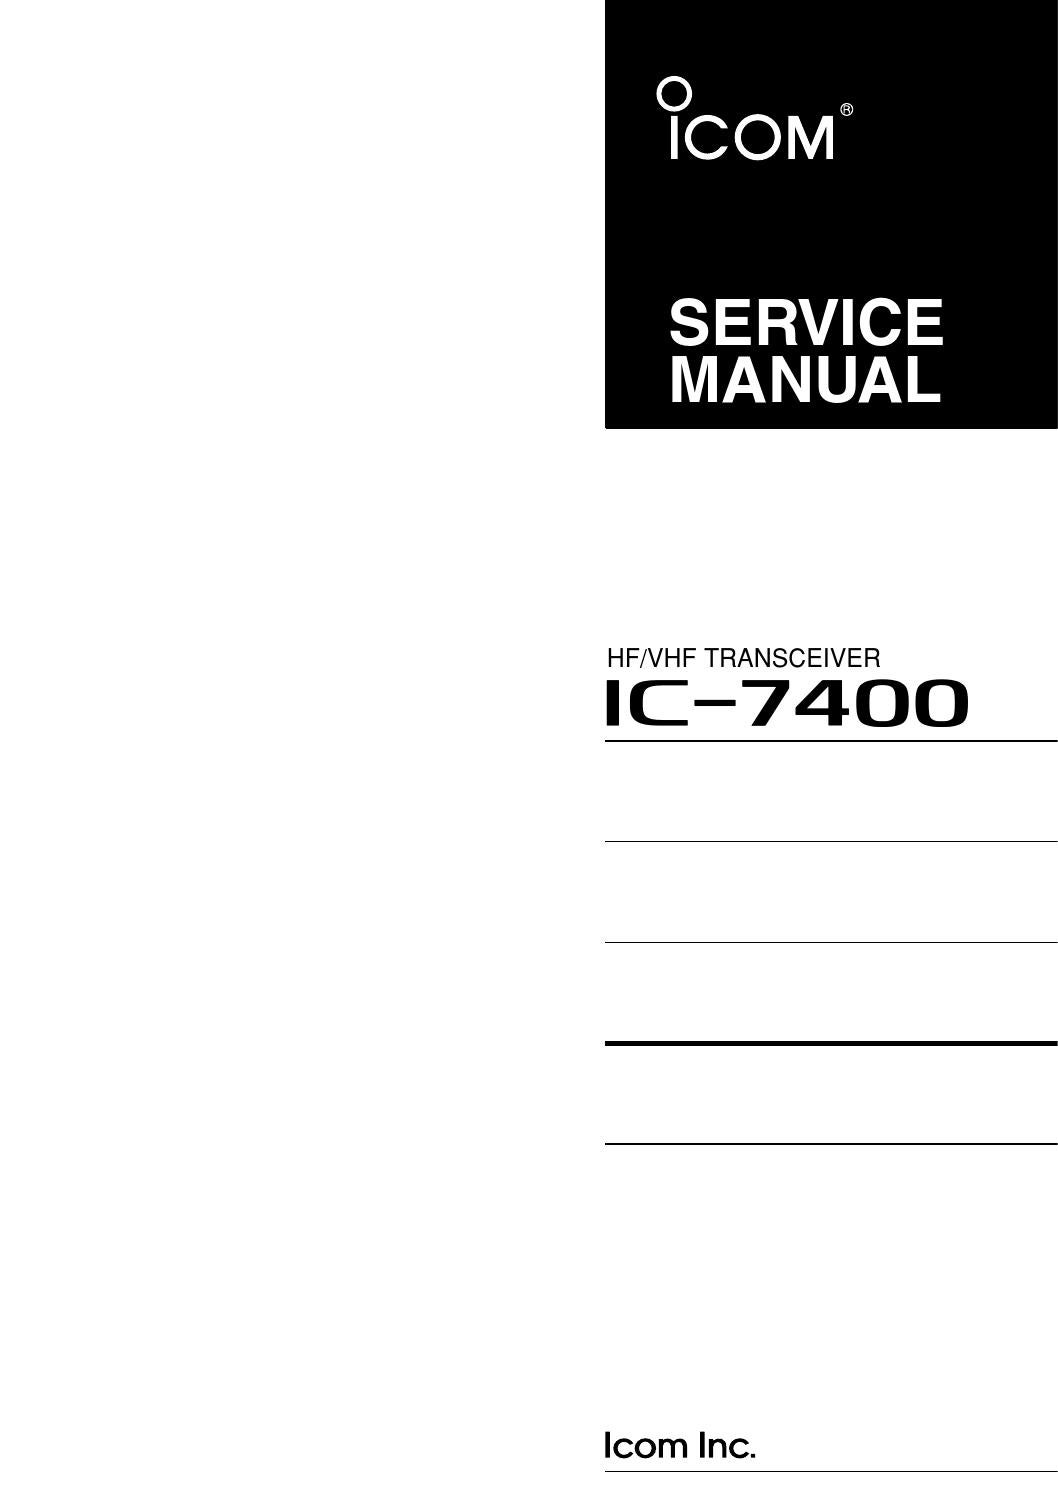 Ic 7400 Service Manual 1 By Fernando Luiz De Souza Issuu Free Schematic Diagram 1hz Up To 22mhz Generator Using Max038